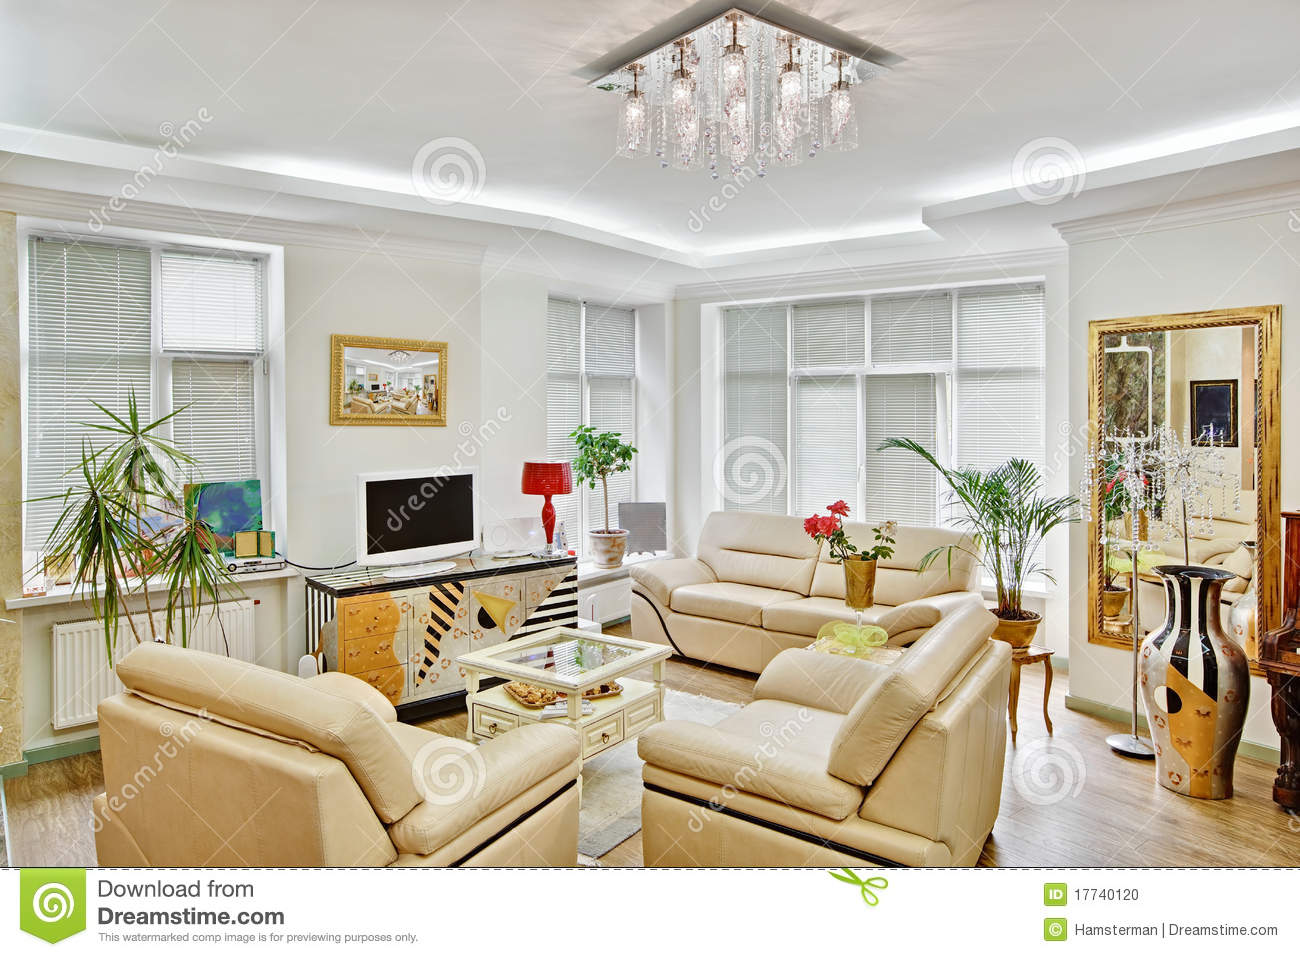 Modern art deco style drawing room interior stock photo for Drawing room style